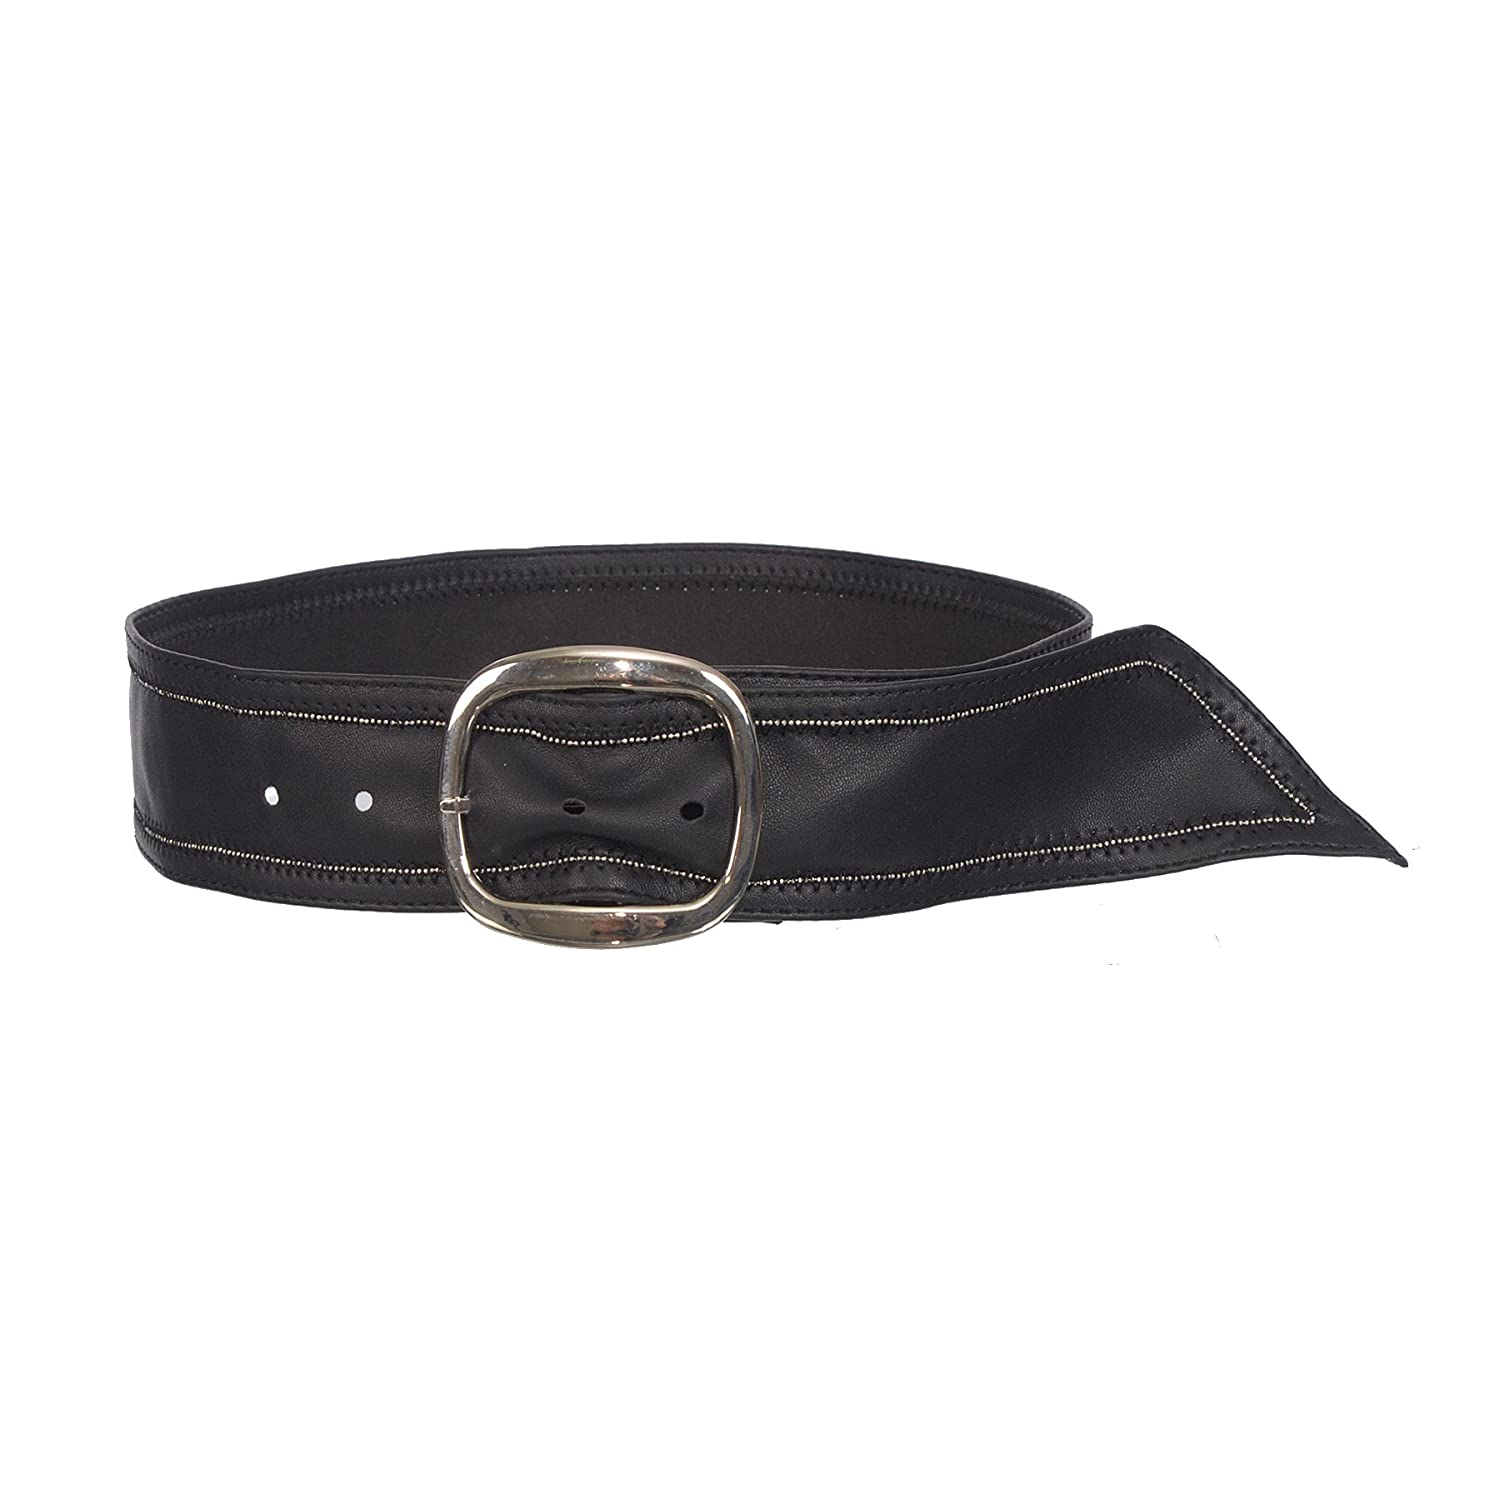 Sunny Belt Girls 2 Inch-Wide Faux Leather Black Sash Belt With Silver Buckle KDC_SUN_SUN26_KIDS_BLK_O/S